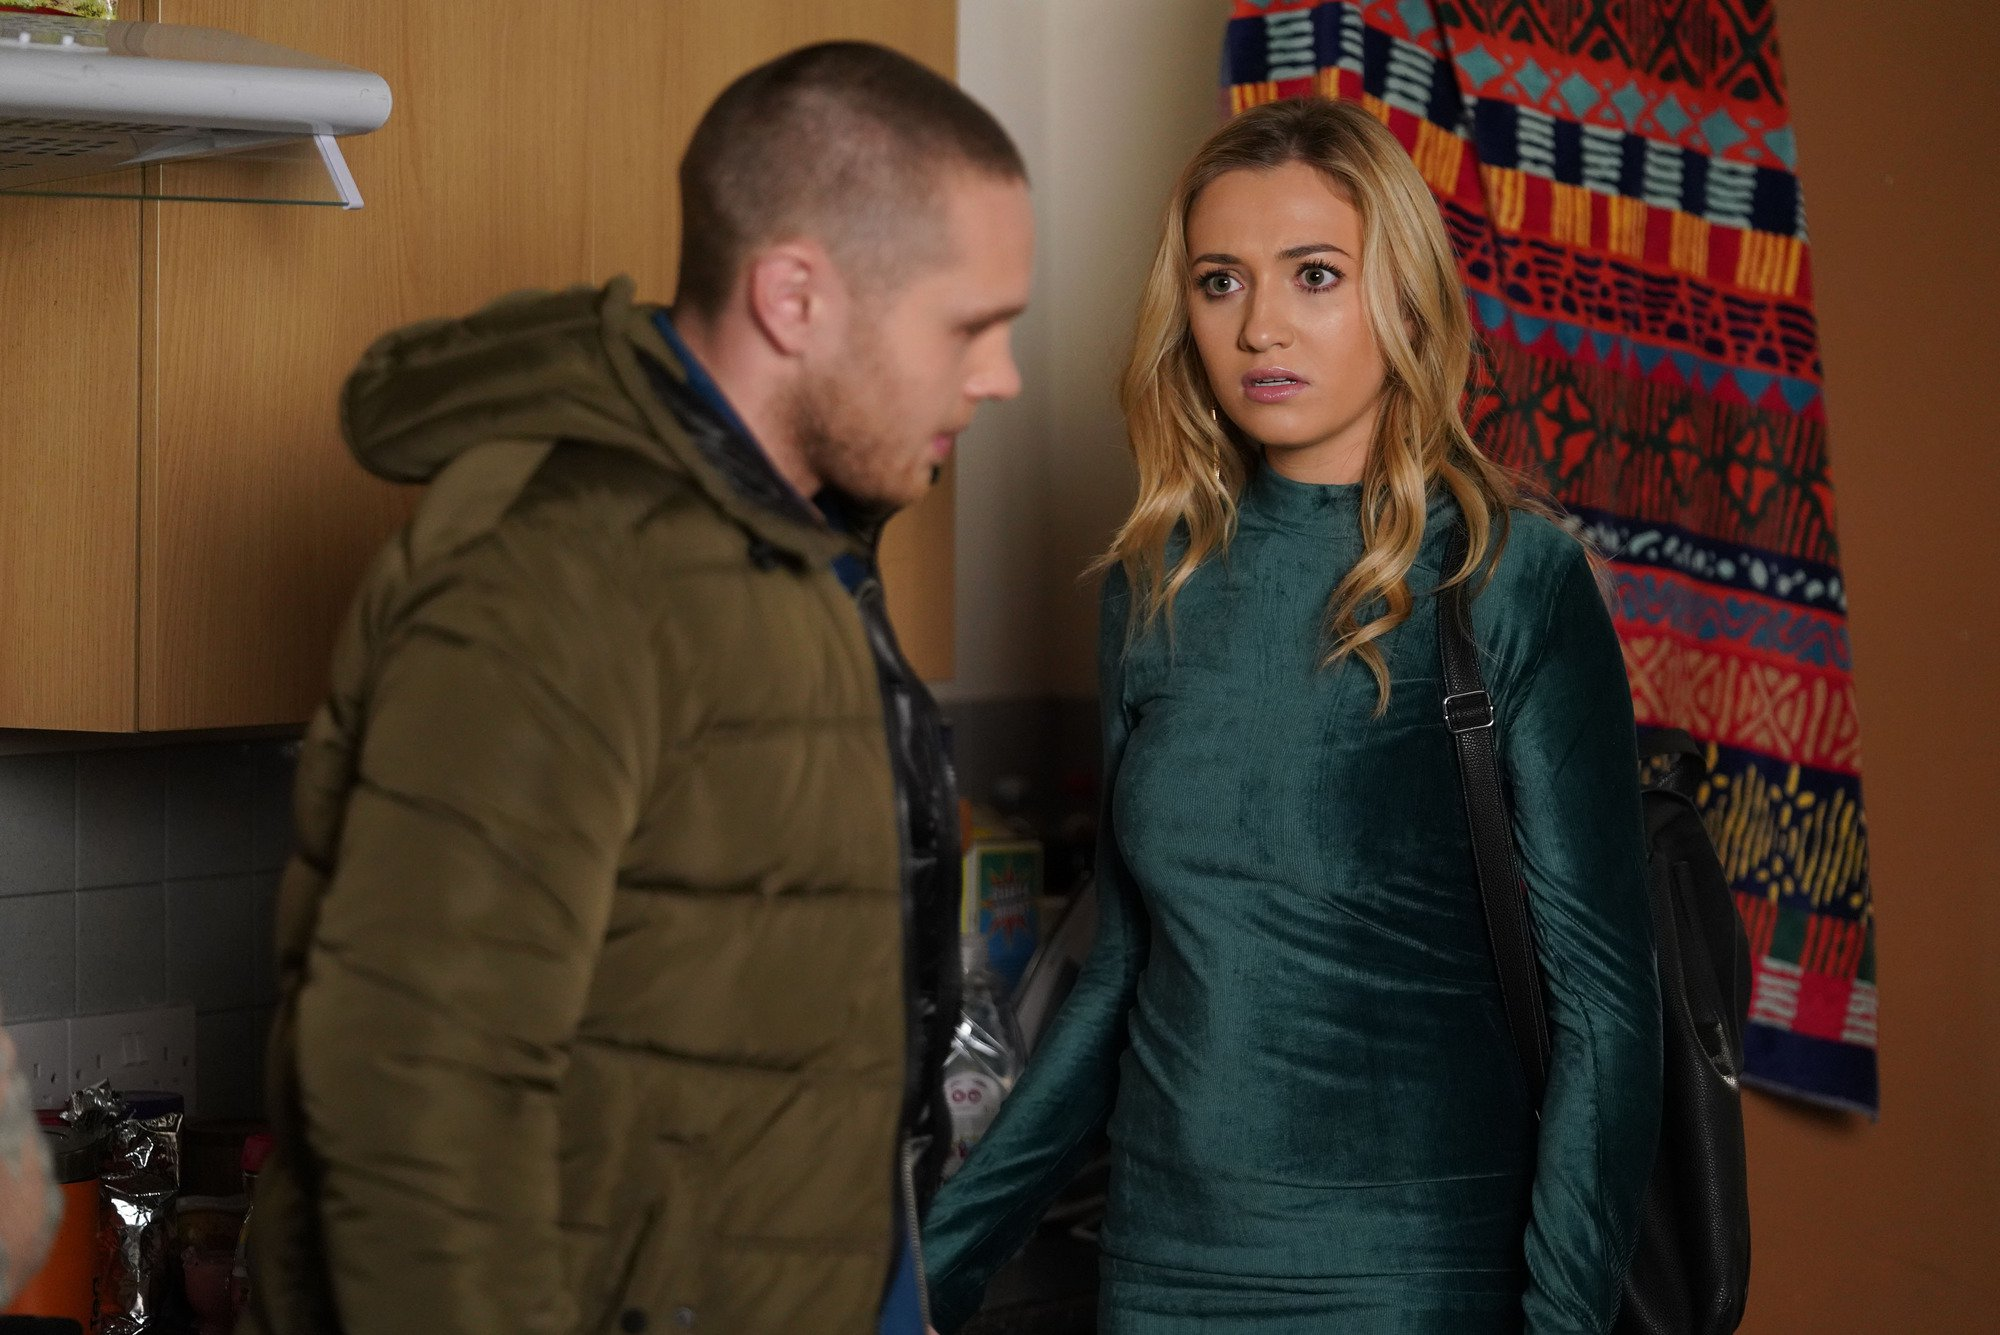 EastEnders spoilers: Phil Mitchell shocks Louise by matchmaking her with Keanu Taylor